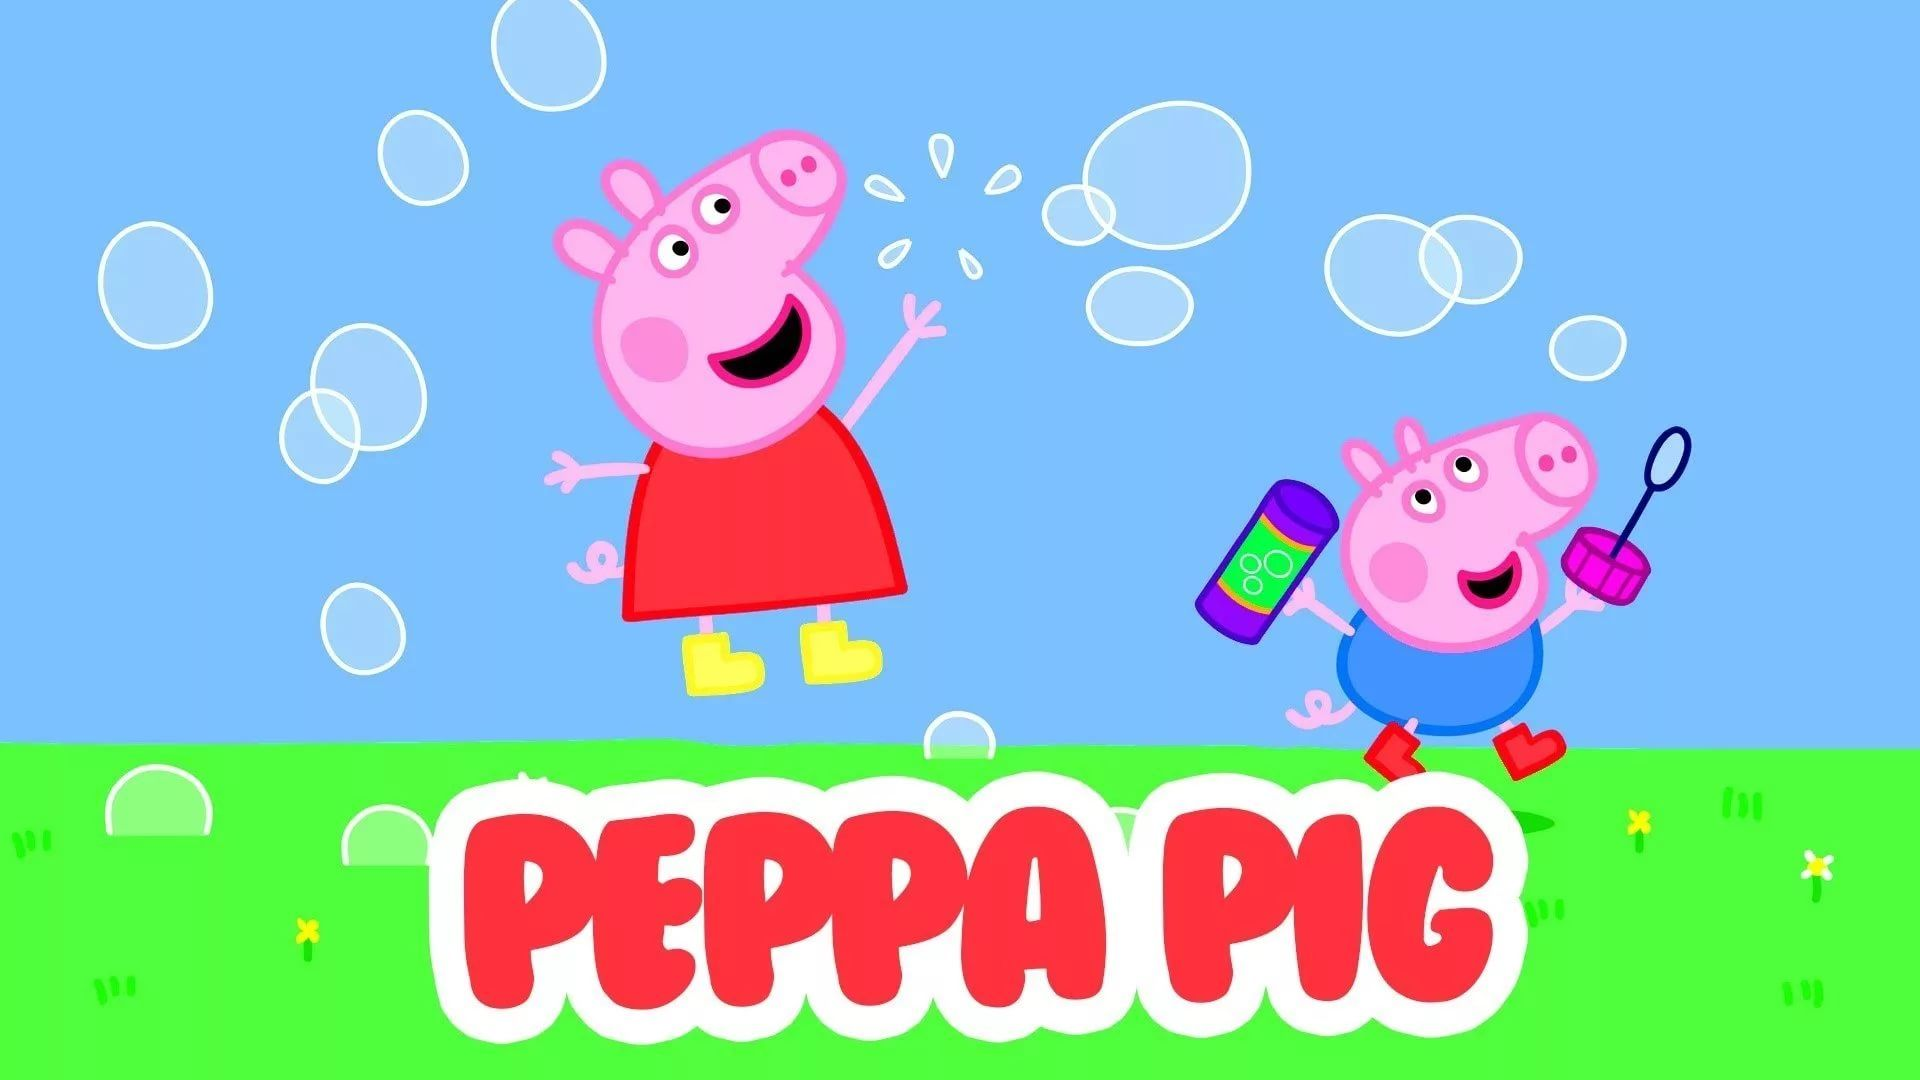 Peppa Pig Wallpapers (15+ images) - WallpaperBoat